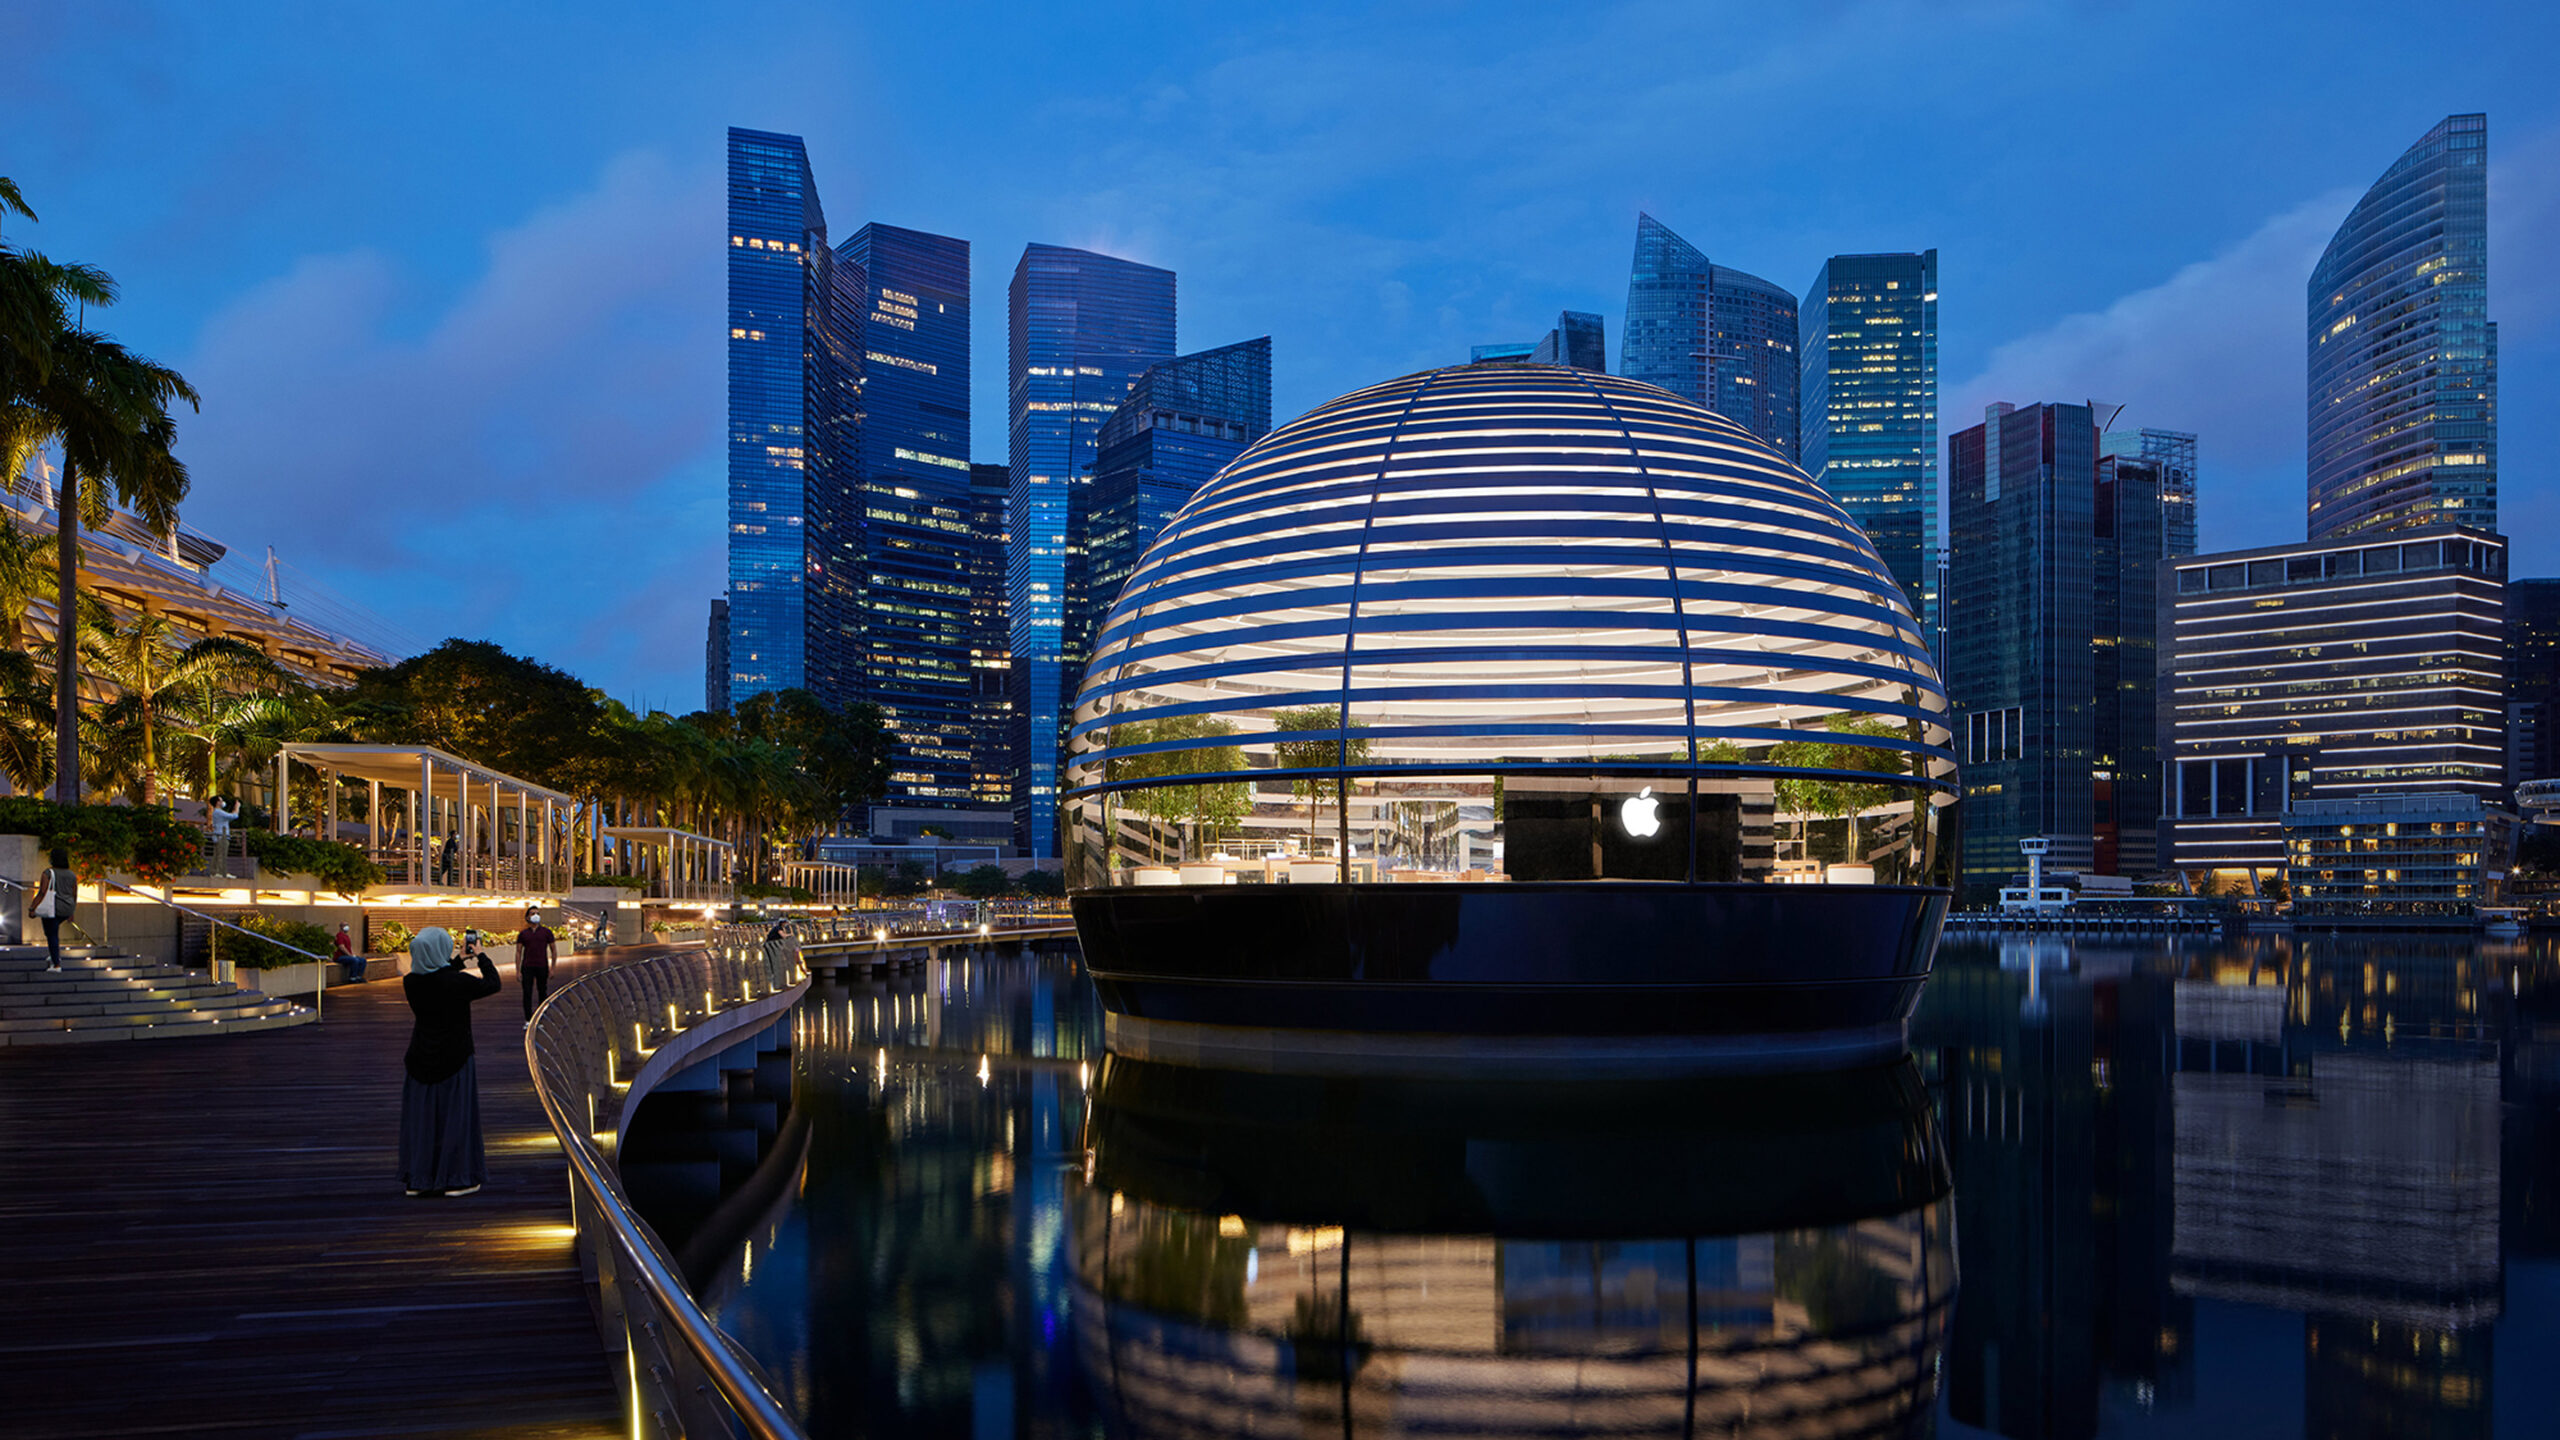 apple nso marina bay sands exterior 09072020 Full Bleed Image.jpg.large 2x scaled